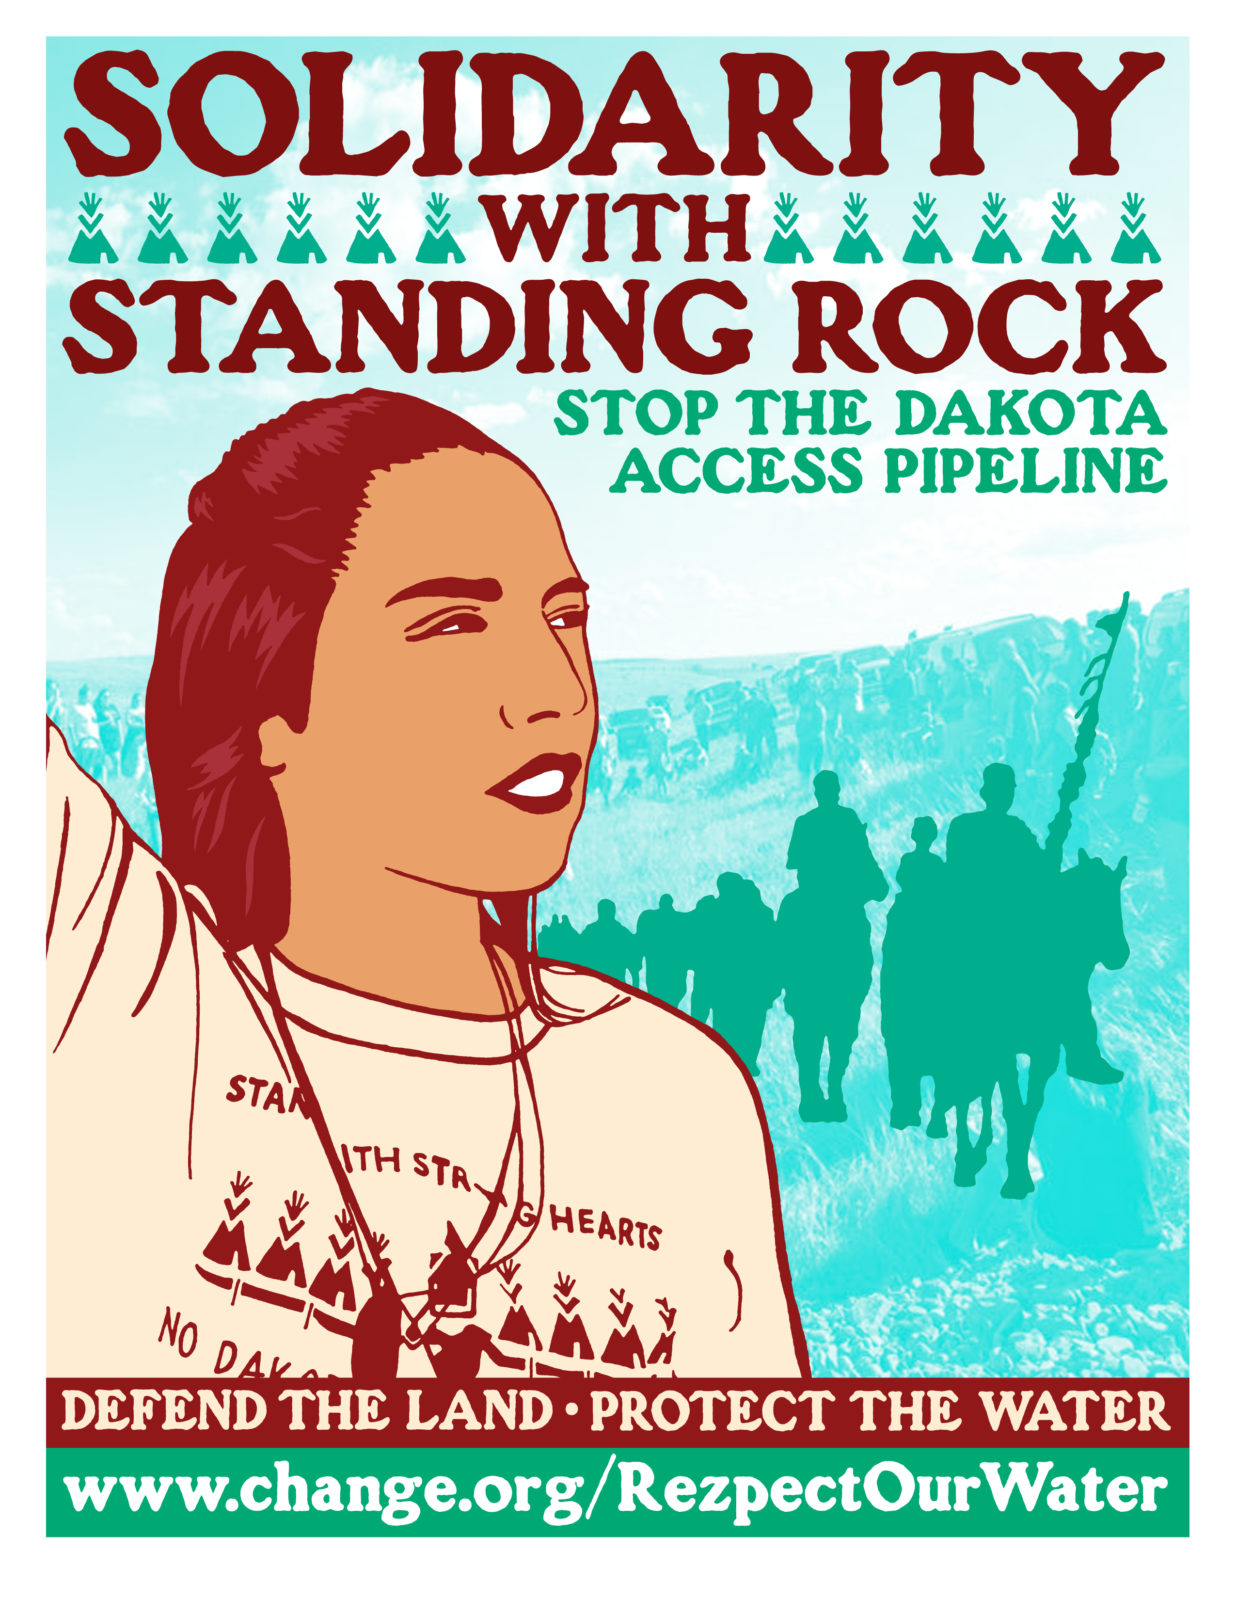 Donation to Standing Rock Small Business Coupon Code